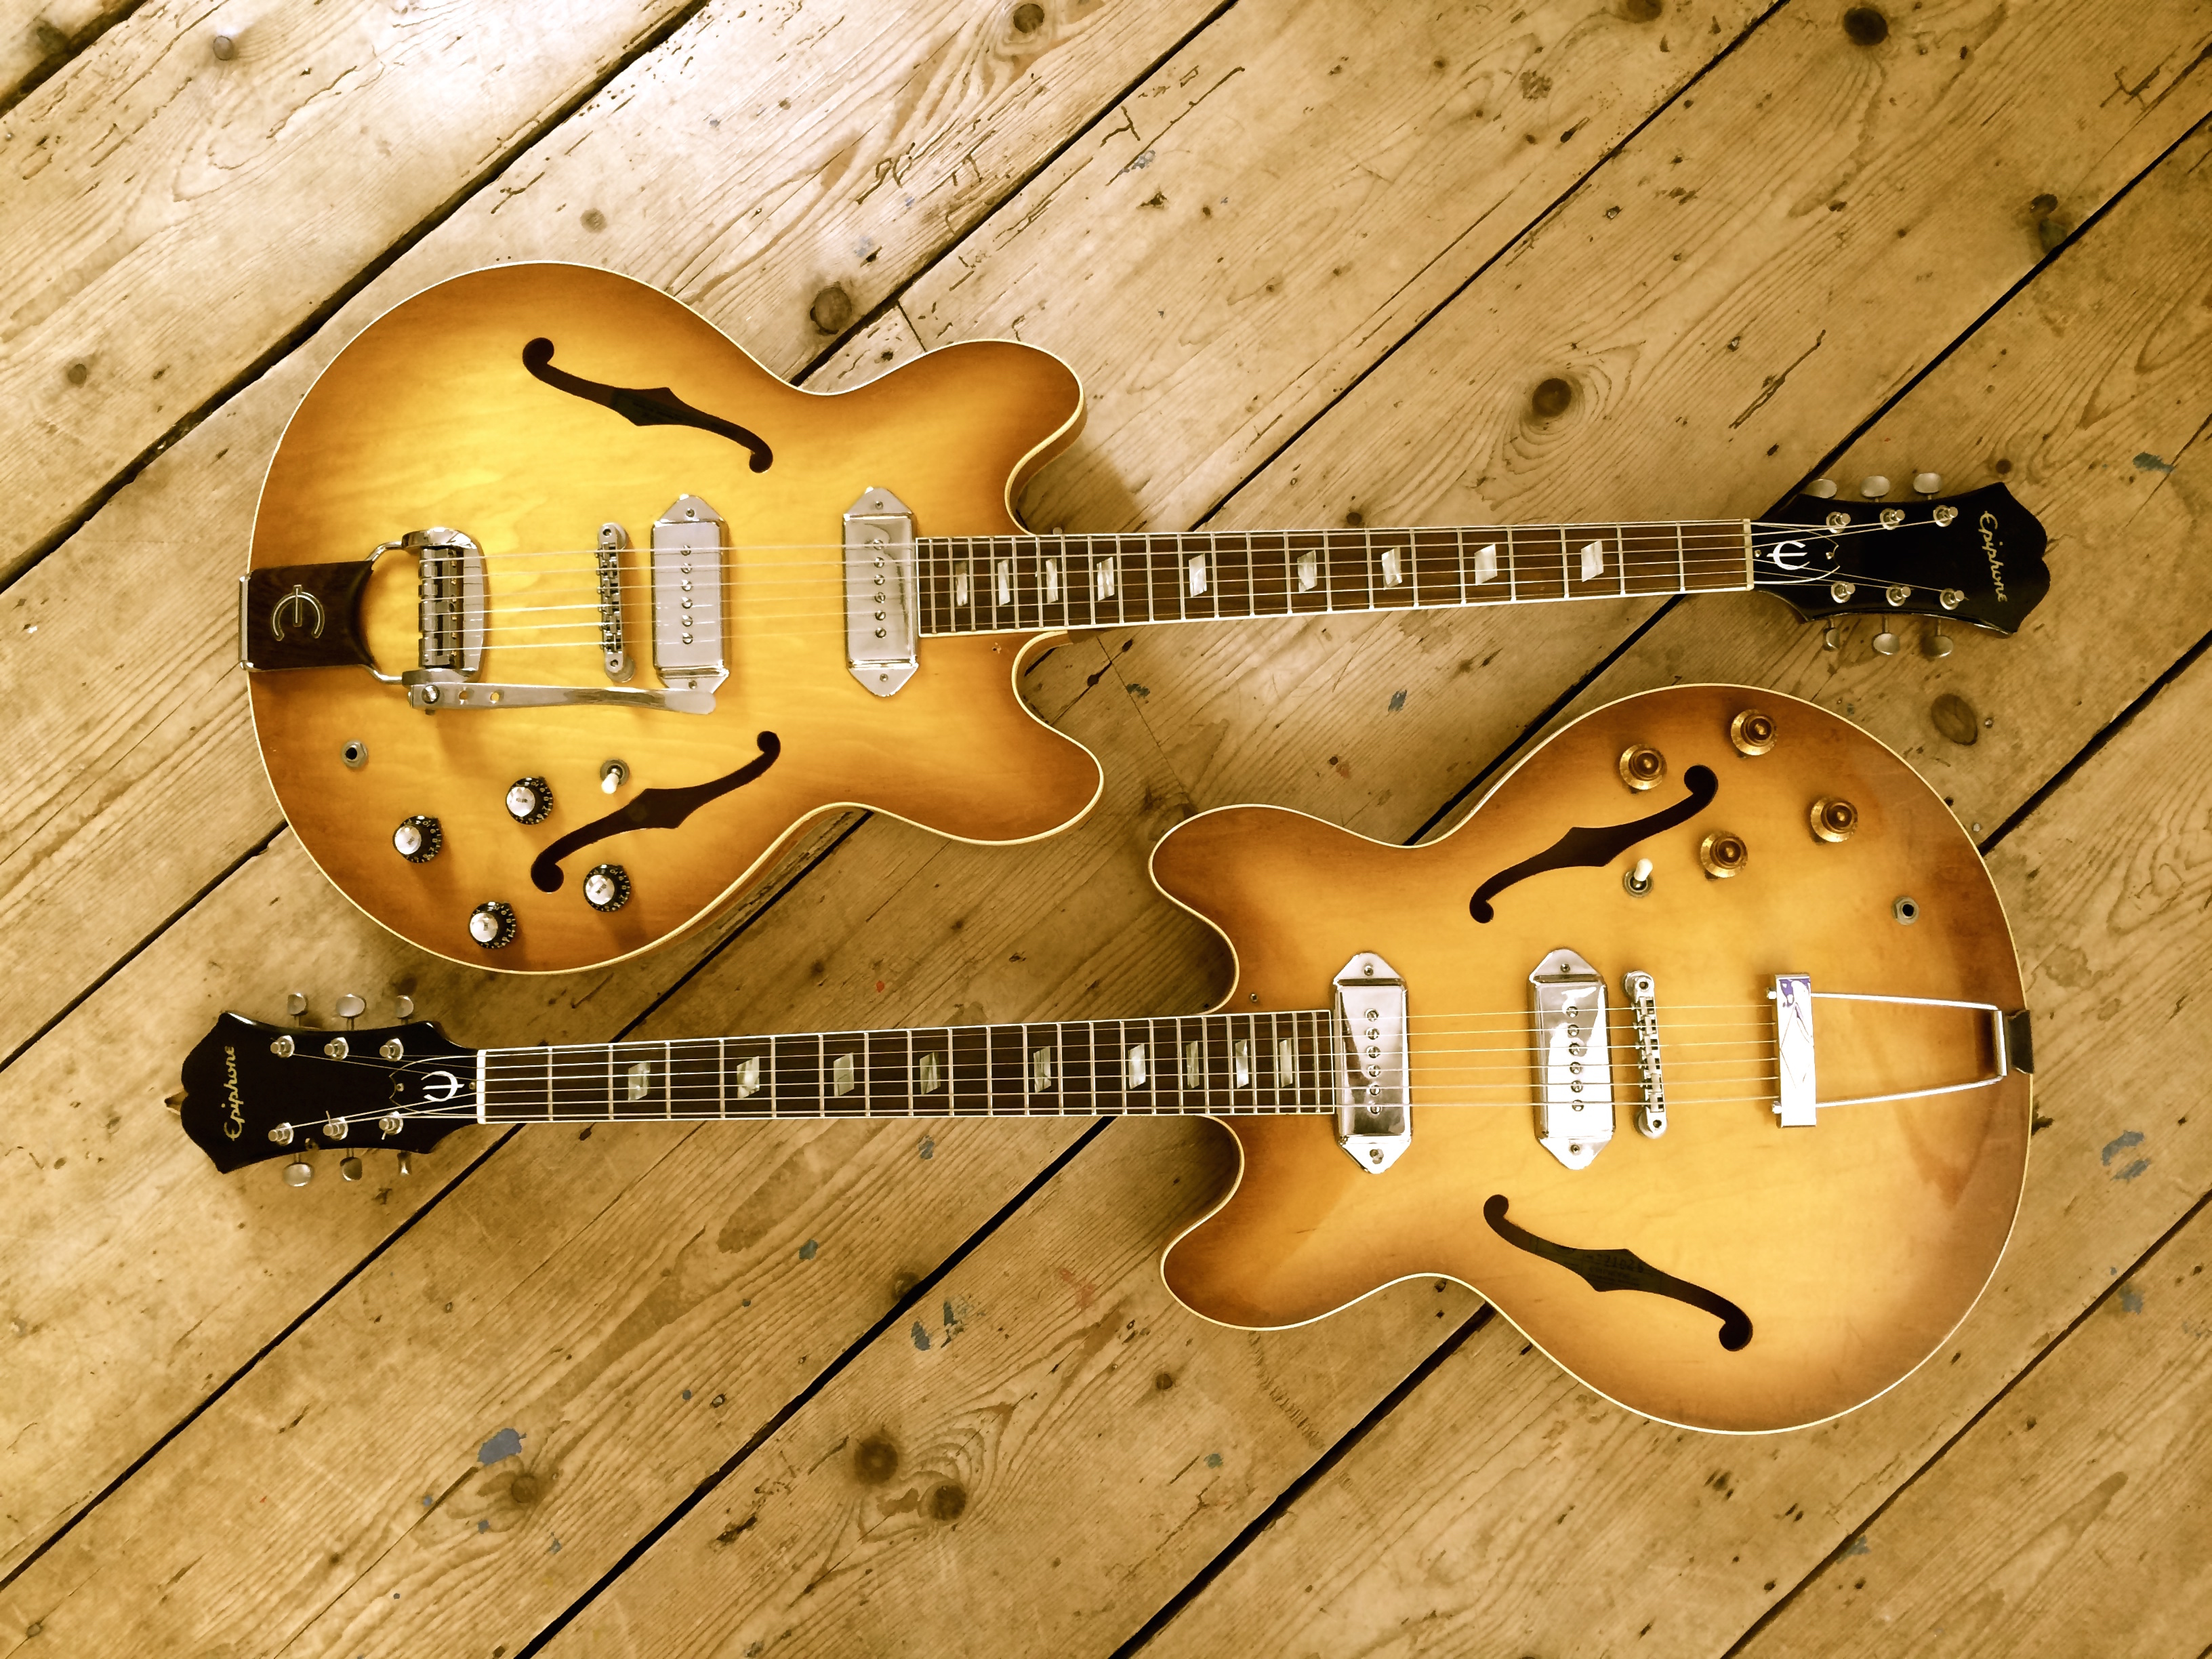 epiphone casino 1966 sunburst & 1967 <br>  here are 2 beautiful tea burst casinos... one from 1966 the other 1967 with vibrato....the 67 is sold... to paul weller